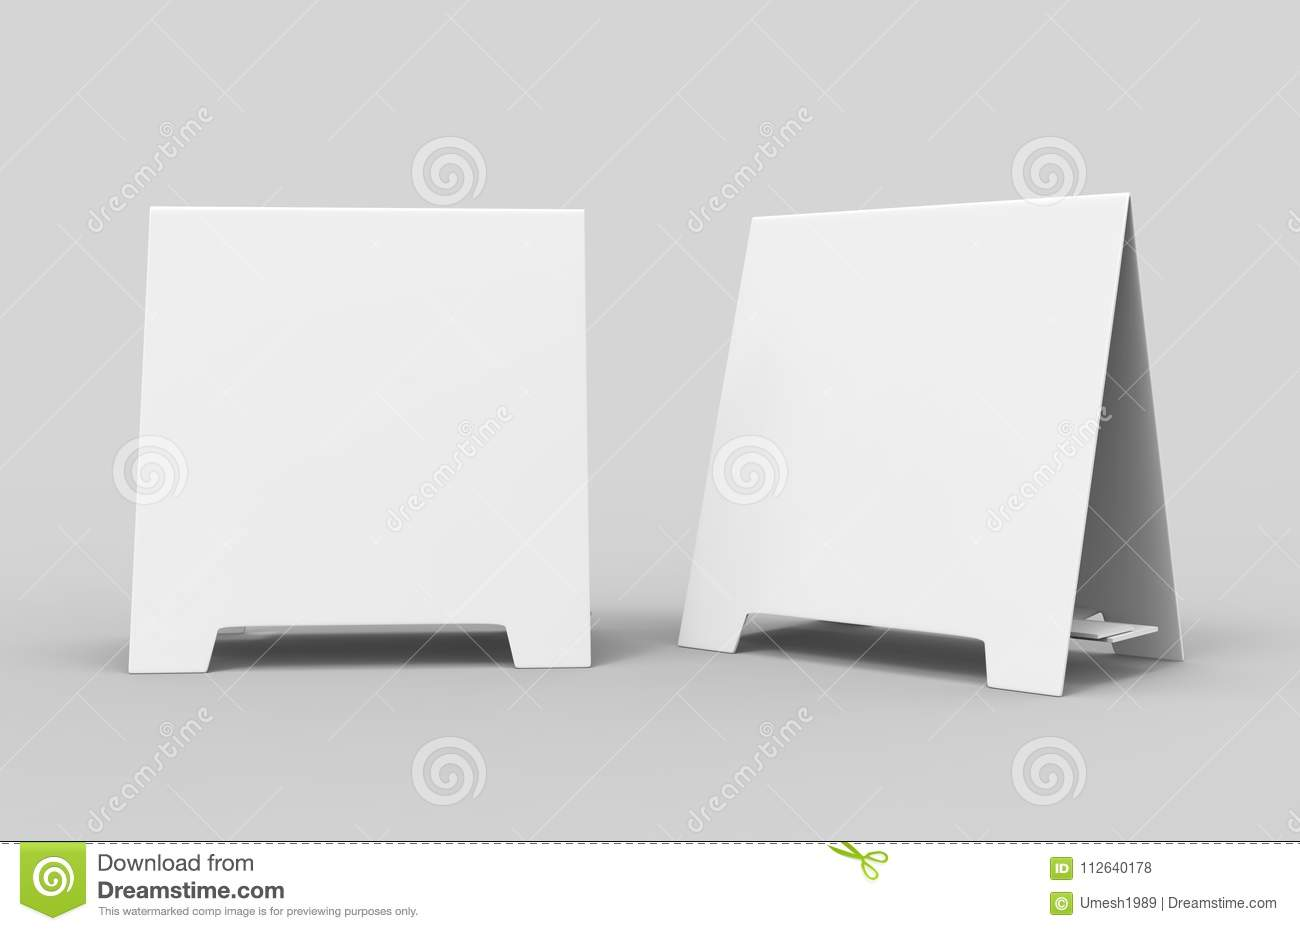 photograph regarding Printable Tent Card referred to as Pill Tent Card Talkers Marketing Menu Card White Blank